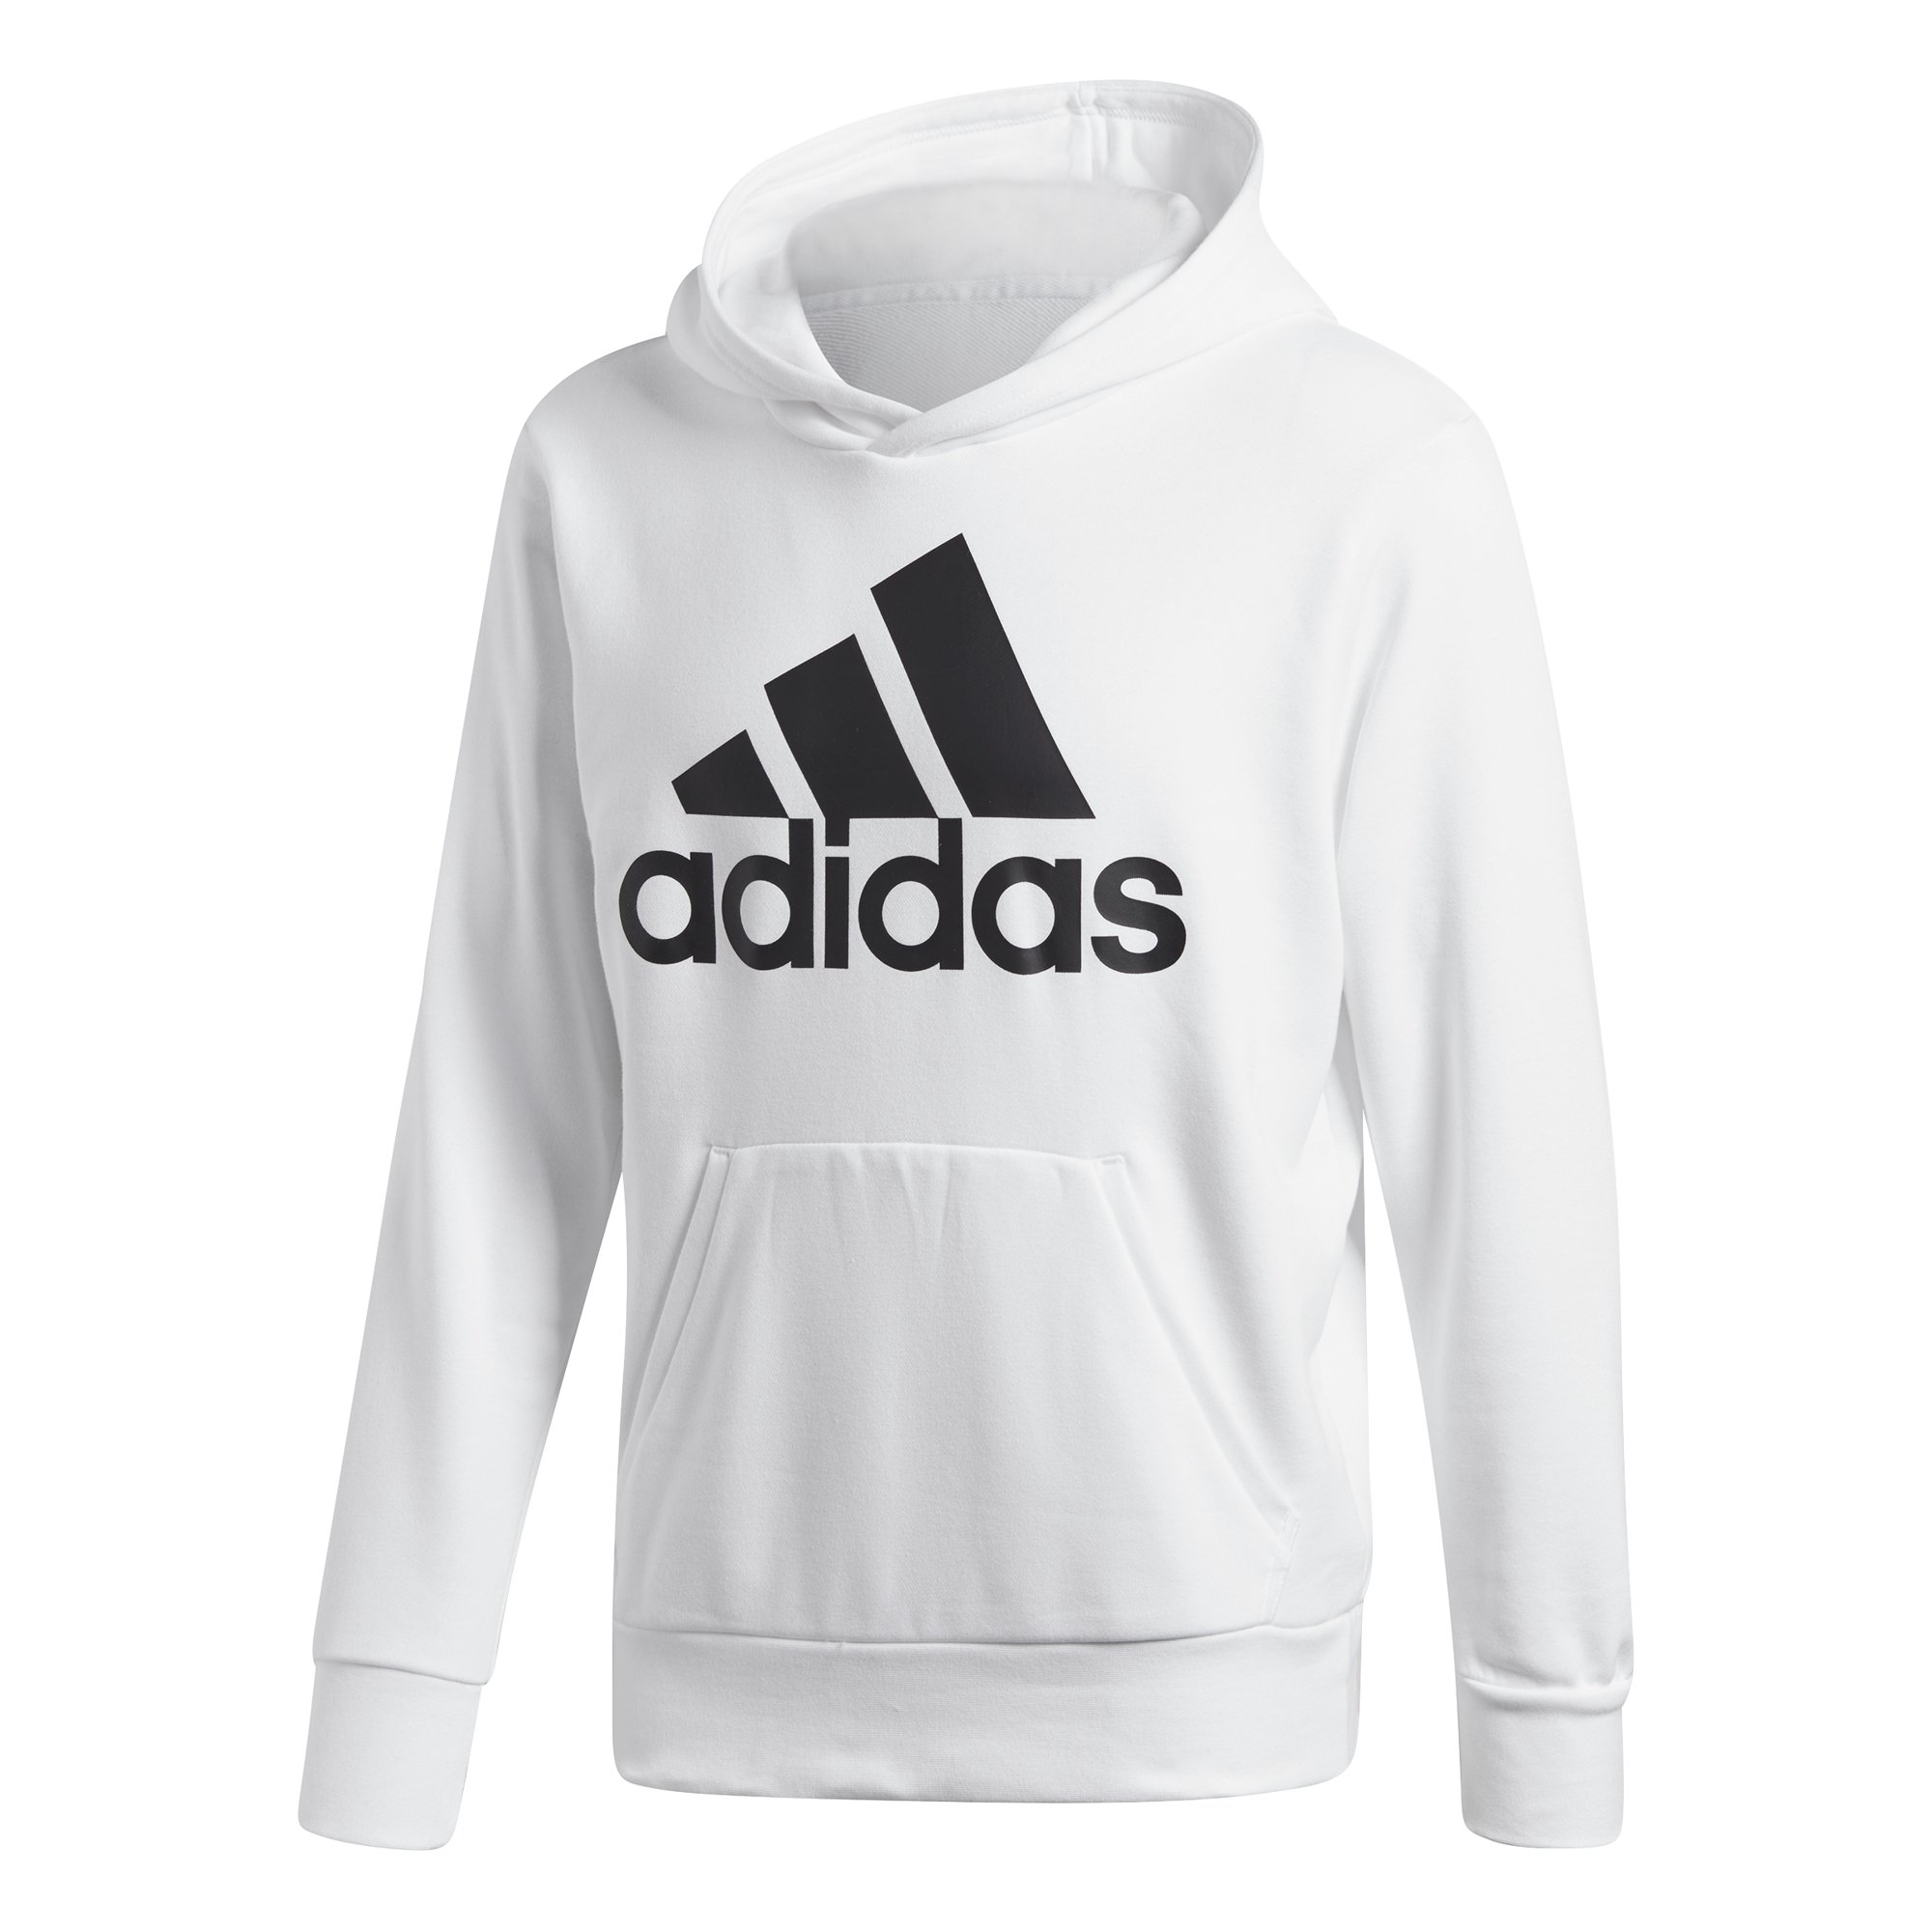 adidas Athletics Essentials Linear Pullover Hoodie, White/Black, Large by adidas